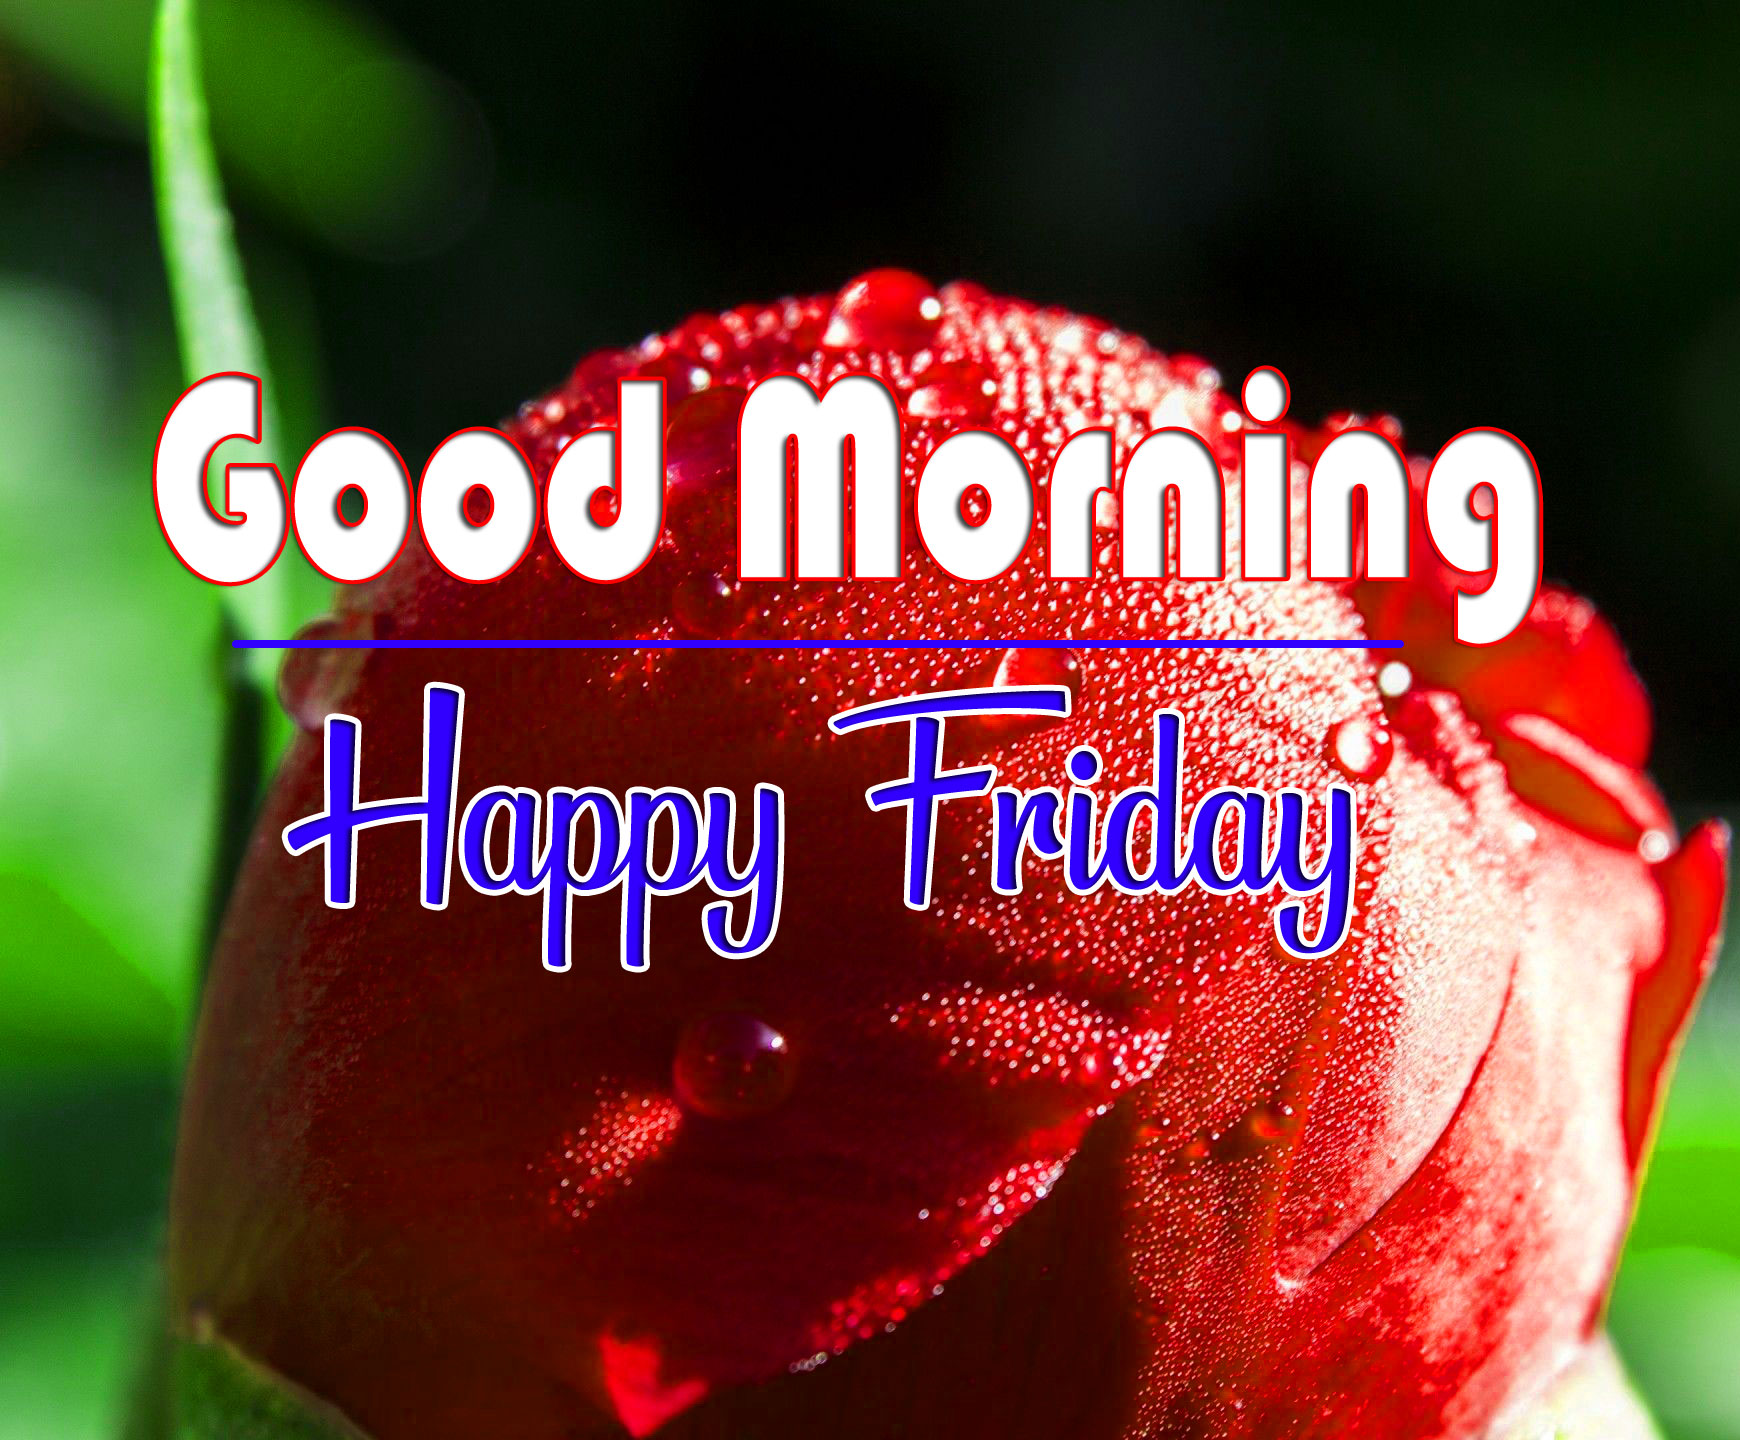 friday Good morning Wishes Wallpaper for Friend